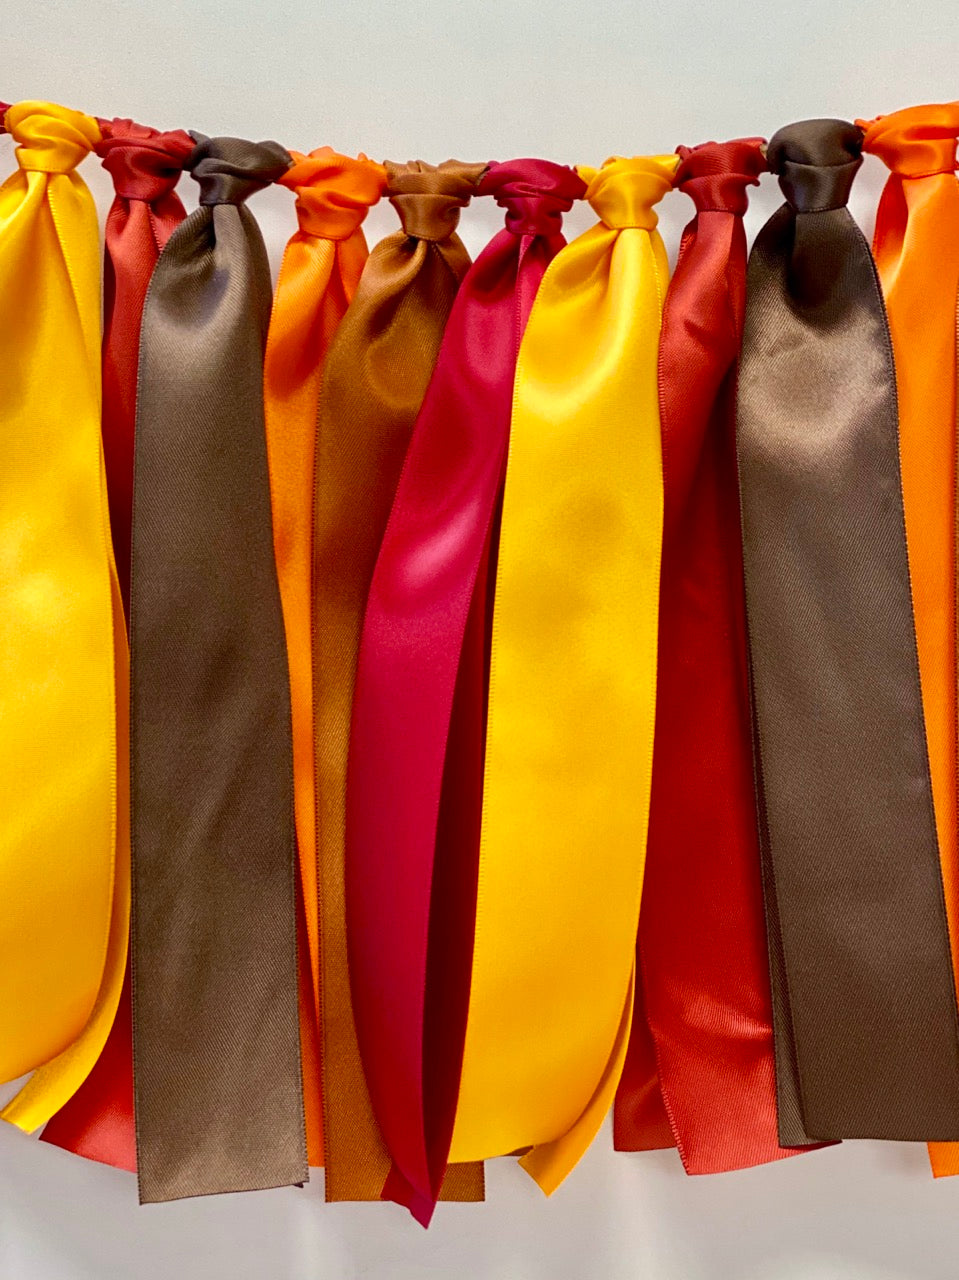 Autumn Thanksgiving Ribbon Bunting - FREE Shipping